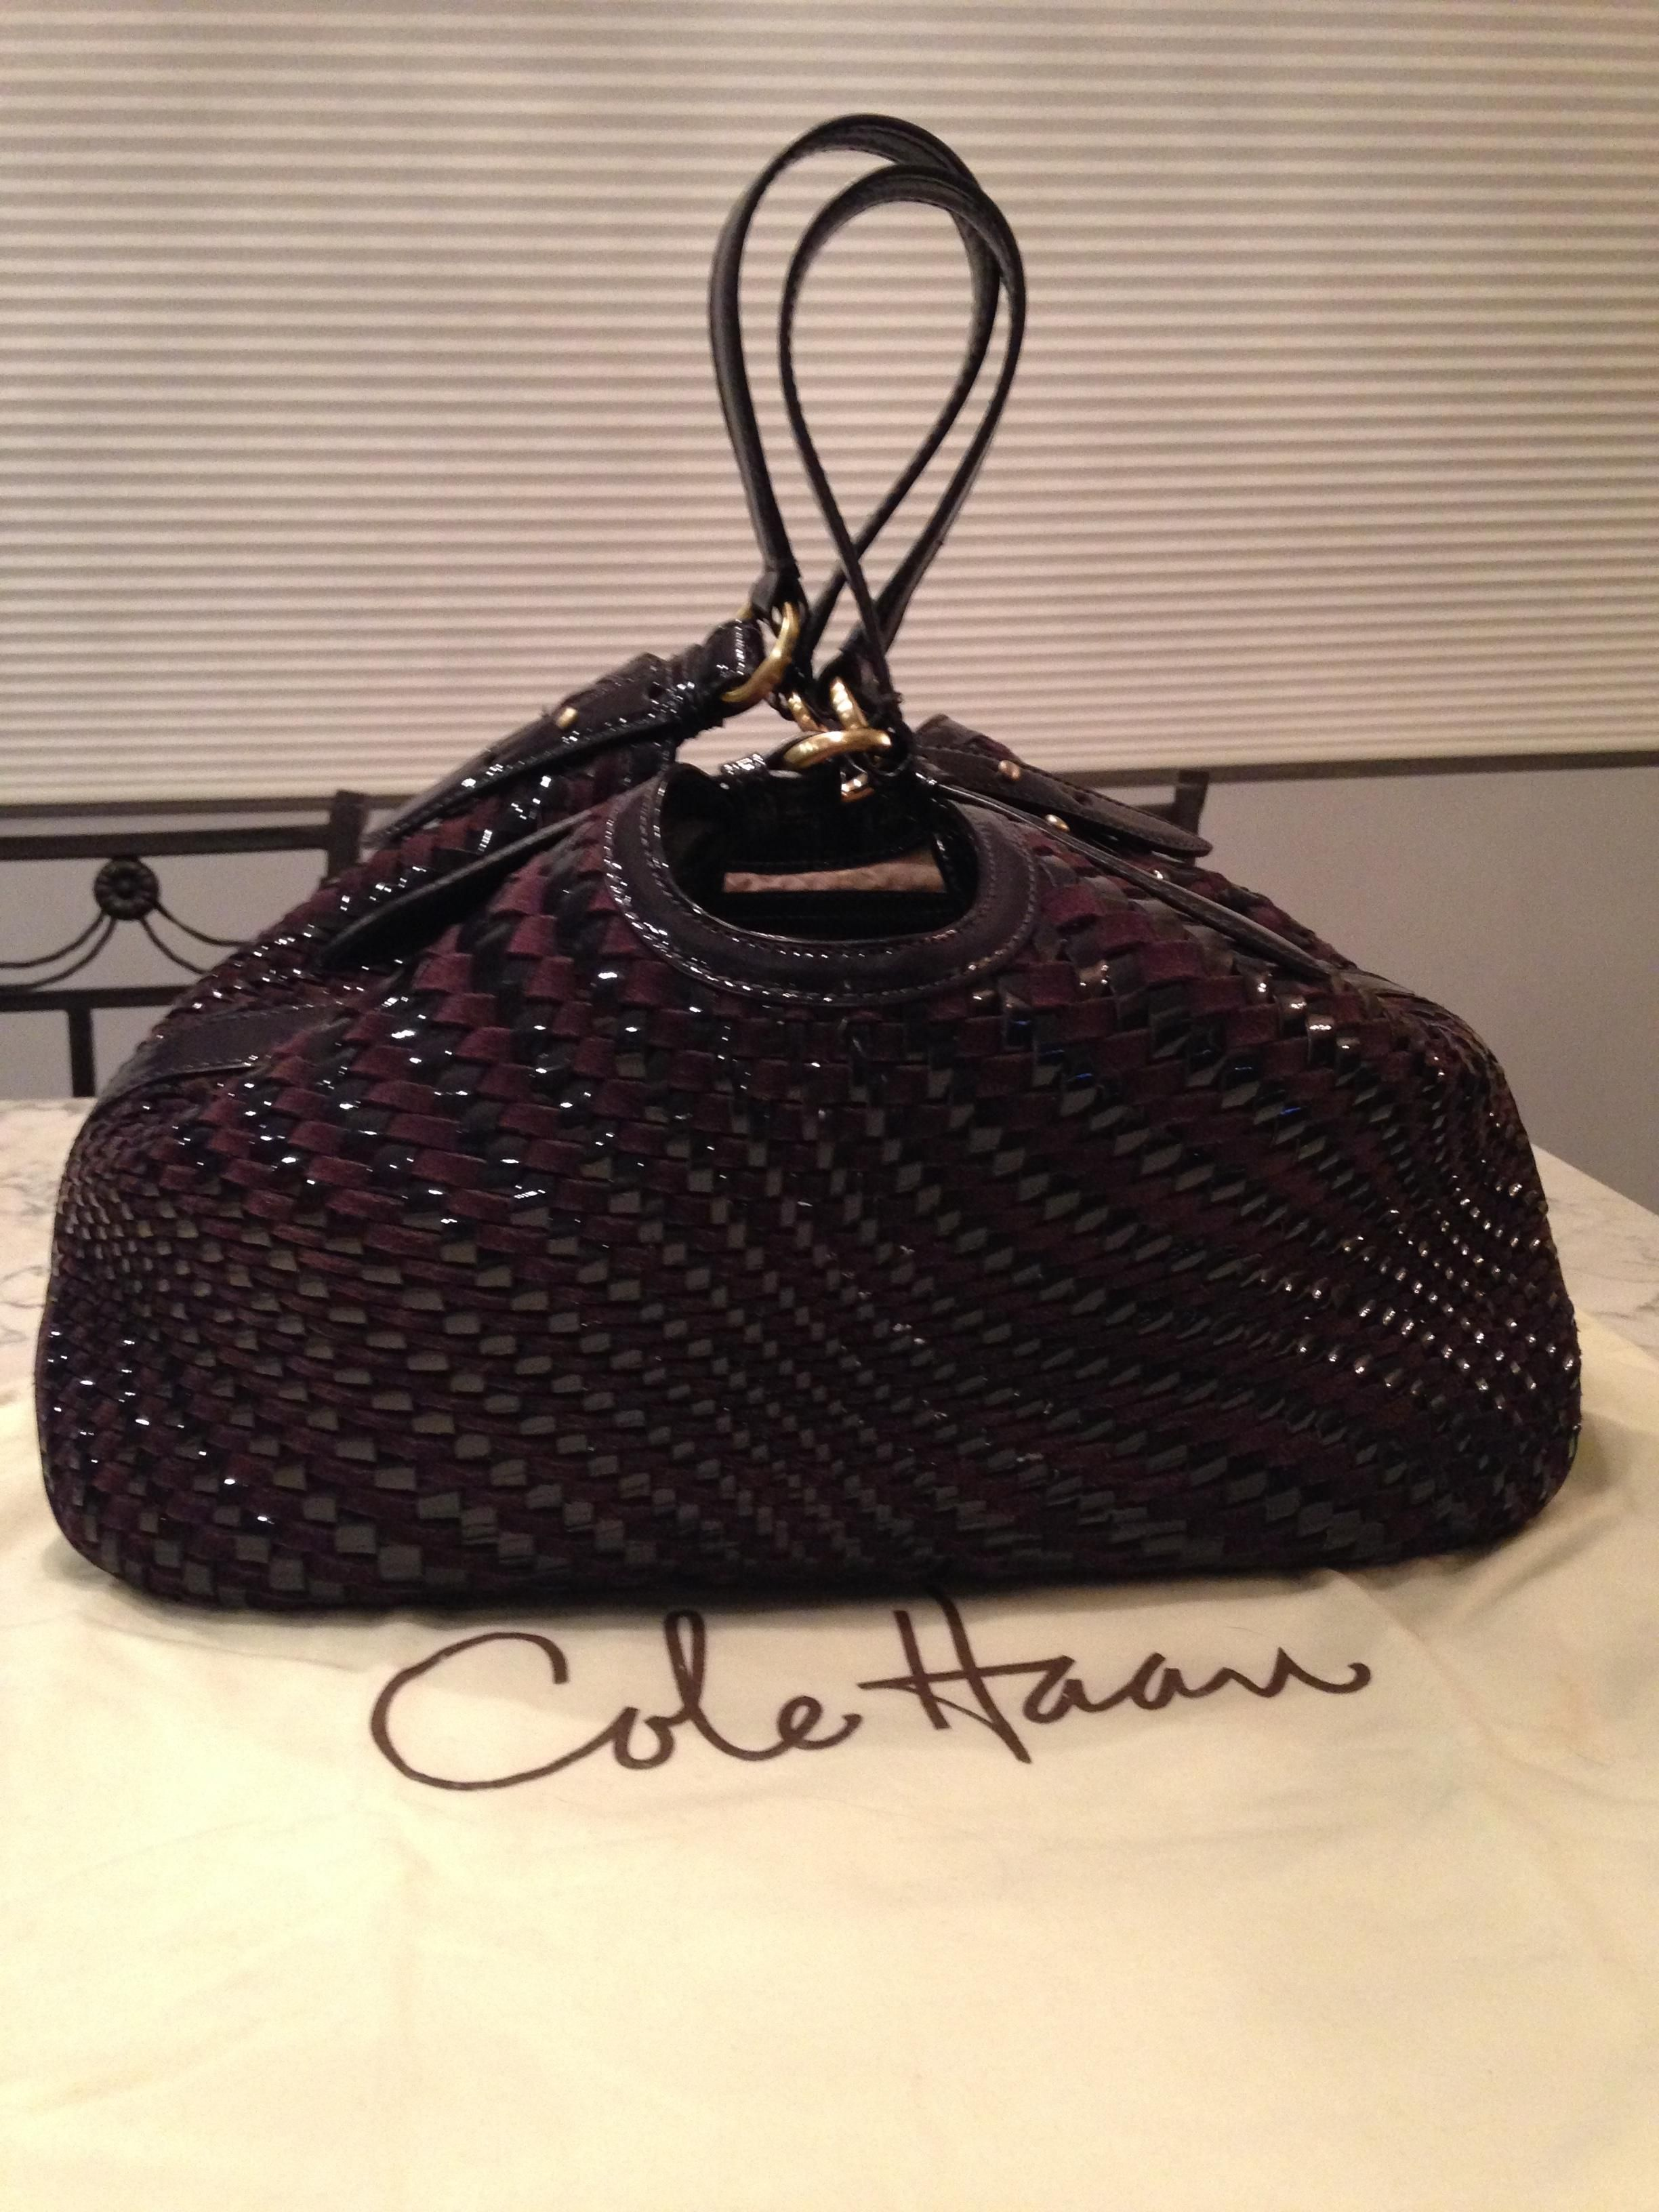 239db76b17 Cole Haan Genevieve Like New! Woven Leather Suede Weave Hobo Satchel  Handbag Purple Brown Plum Tote Bag. Get one of the hottest styles of the  season!